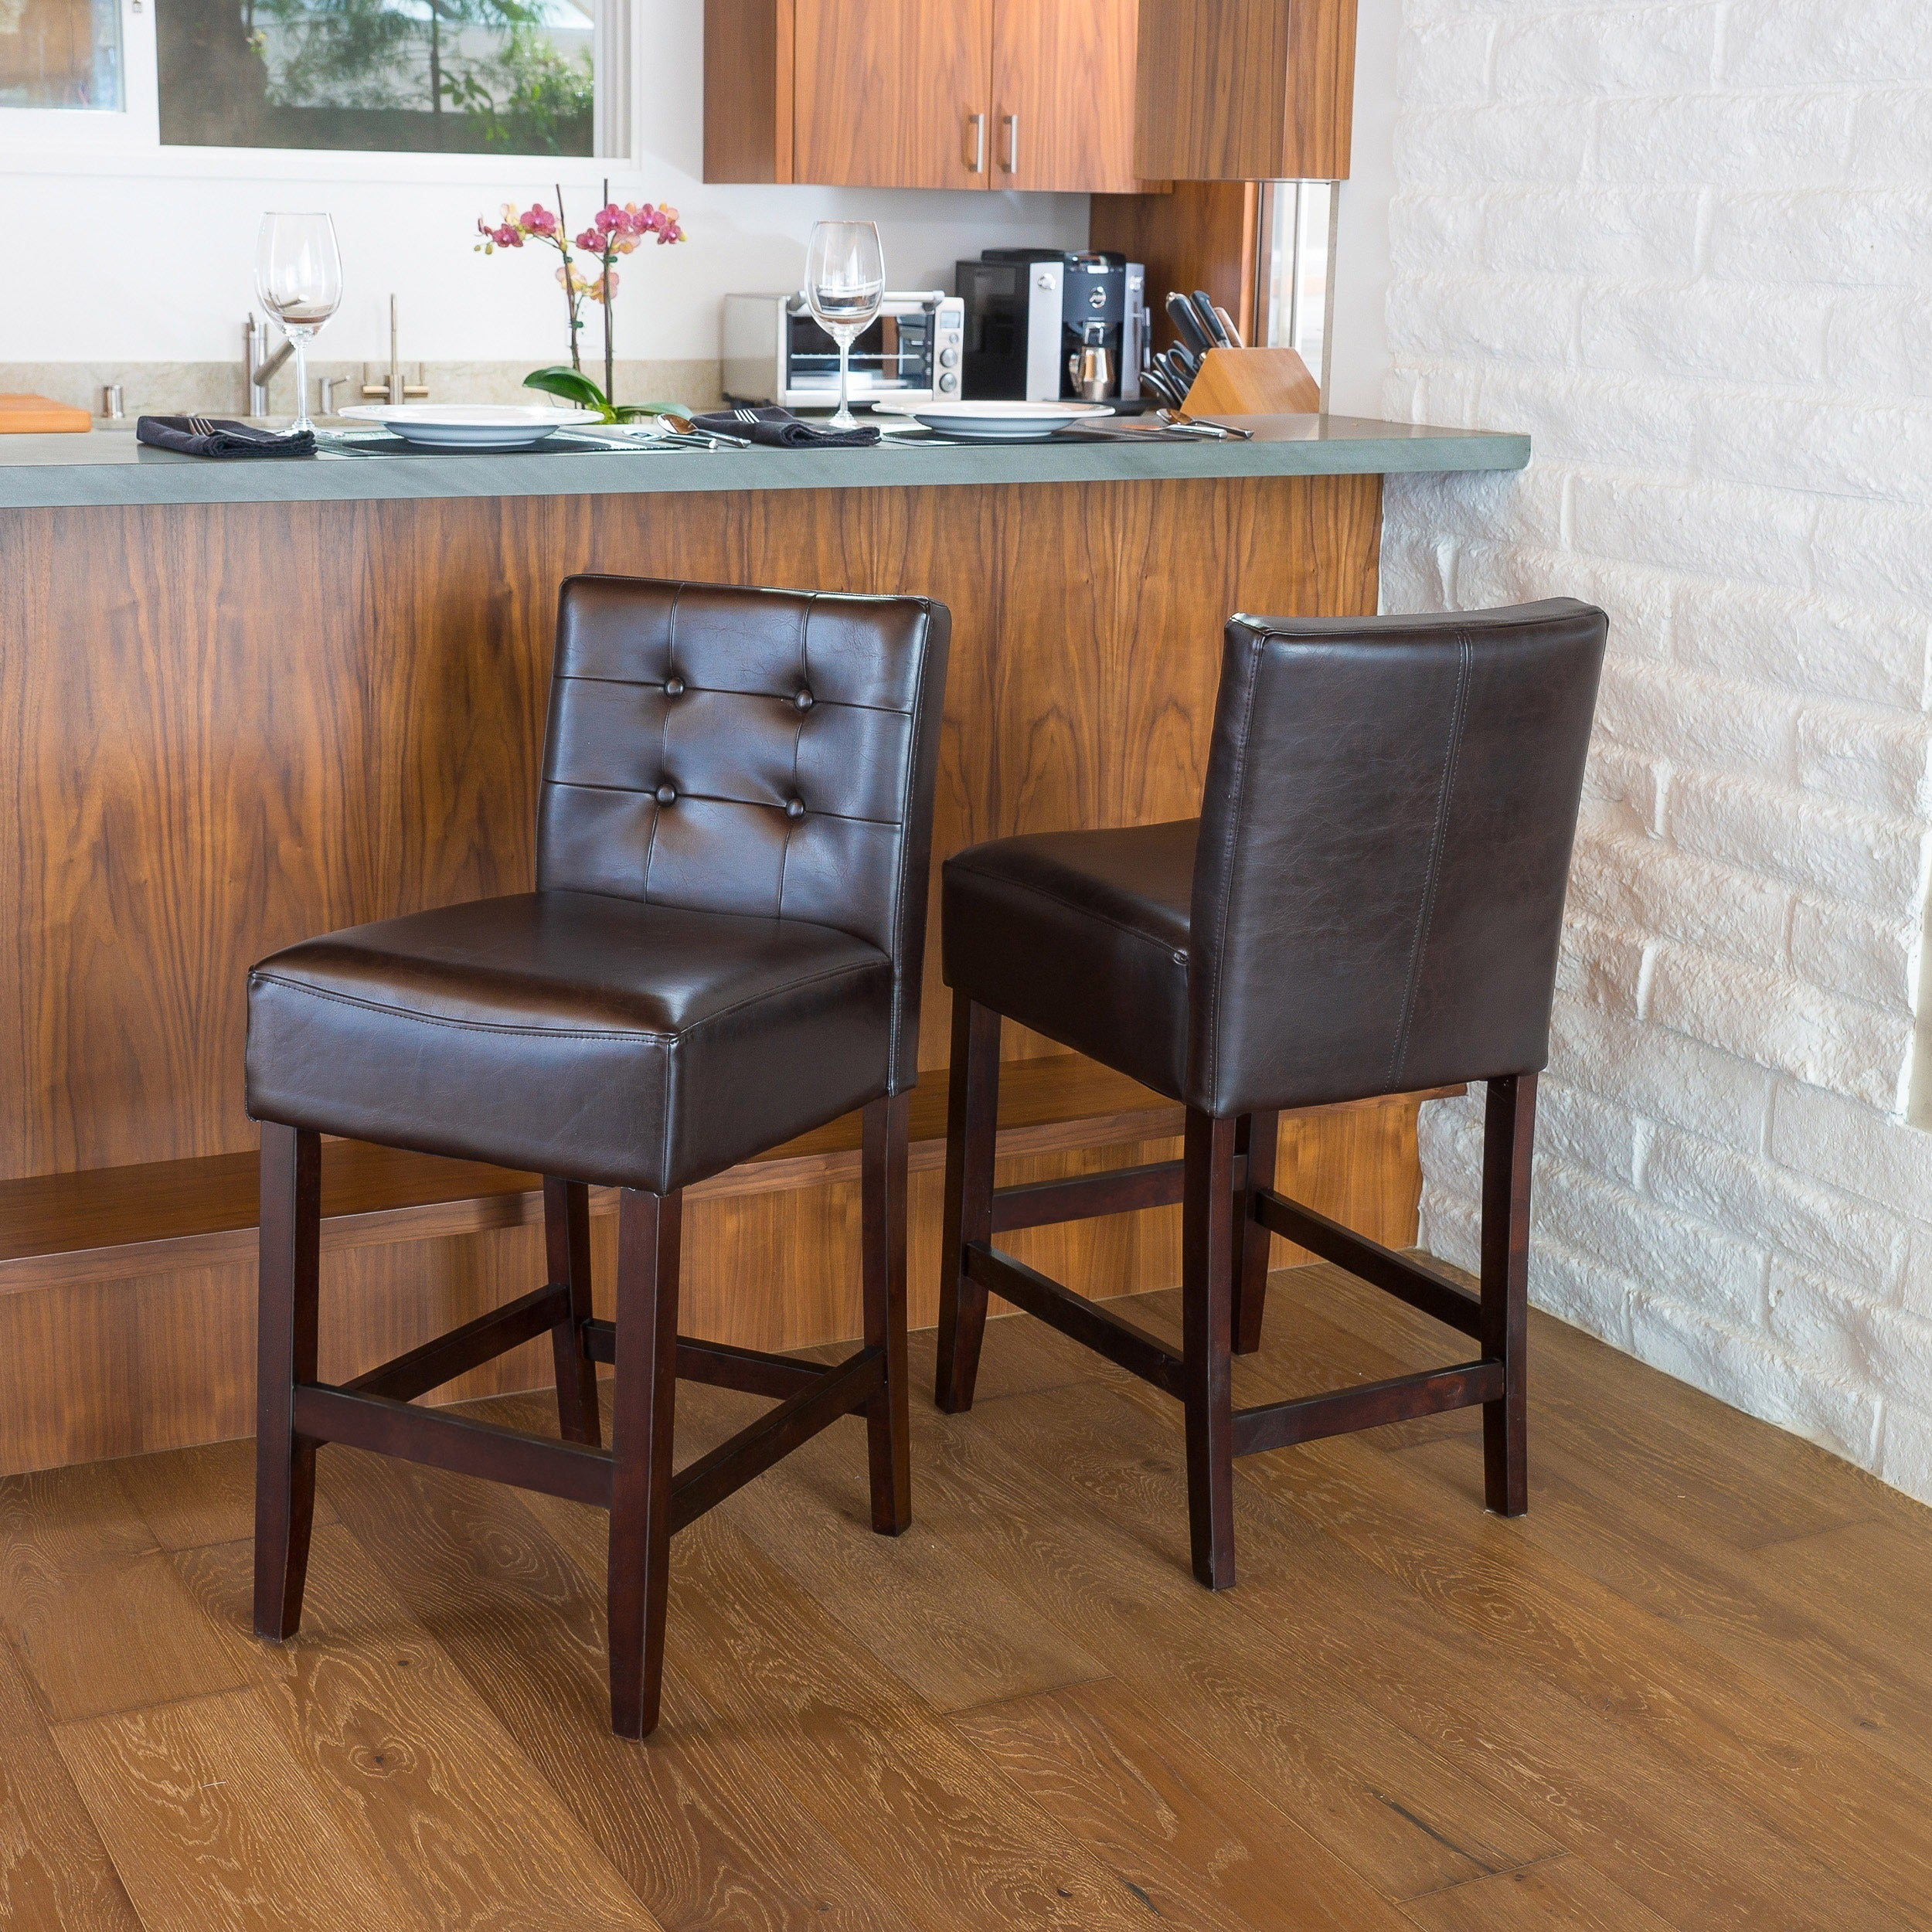 Tate 26 Inch Tufted Leather Counter Stools (Set Of 2) By Christopher Knight  Home   Free Shipping Today   Overstock.com   16015062